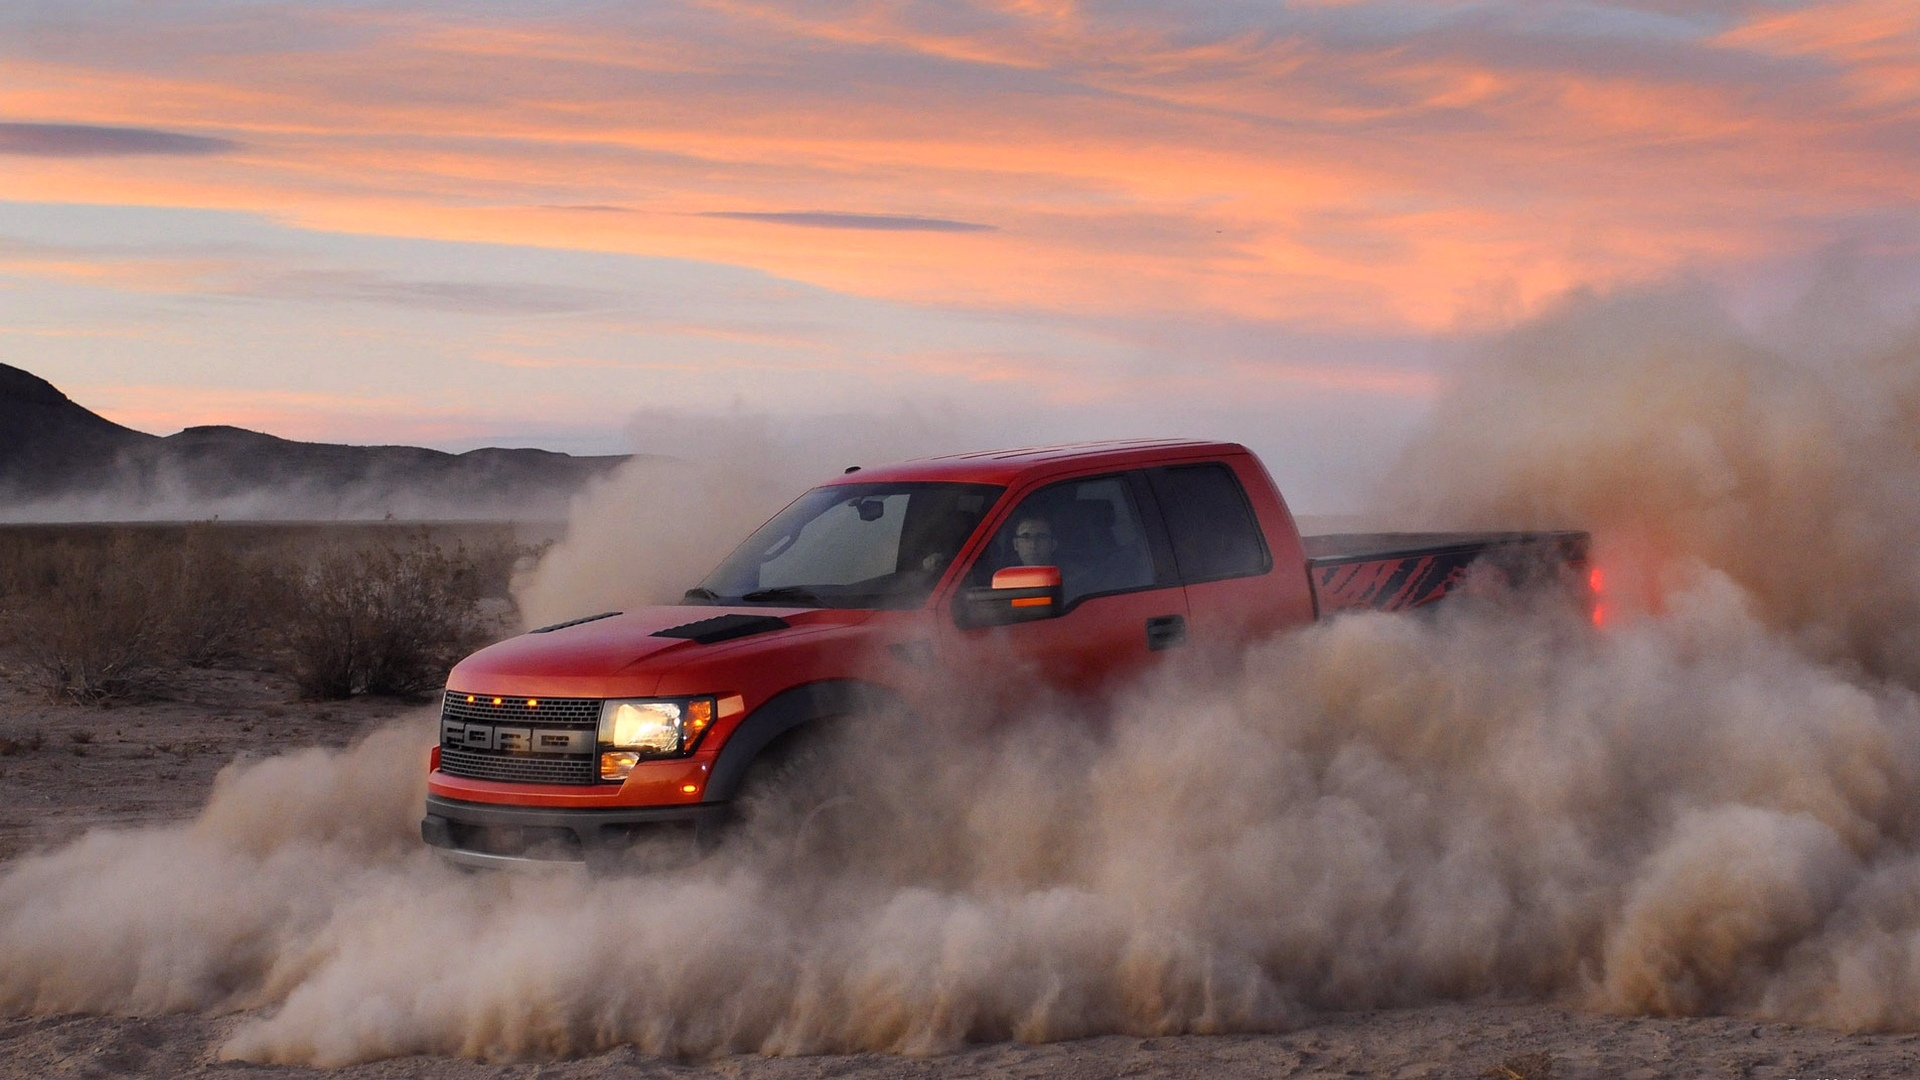 Ford Raptor Hd Wallpaper Background Image 1920x1080 Id 255577